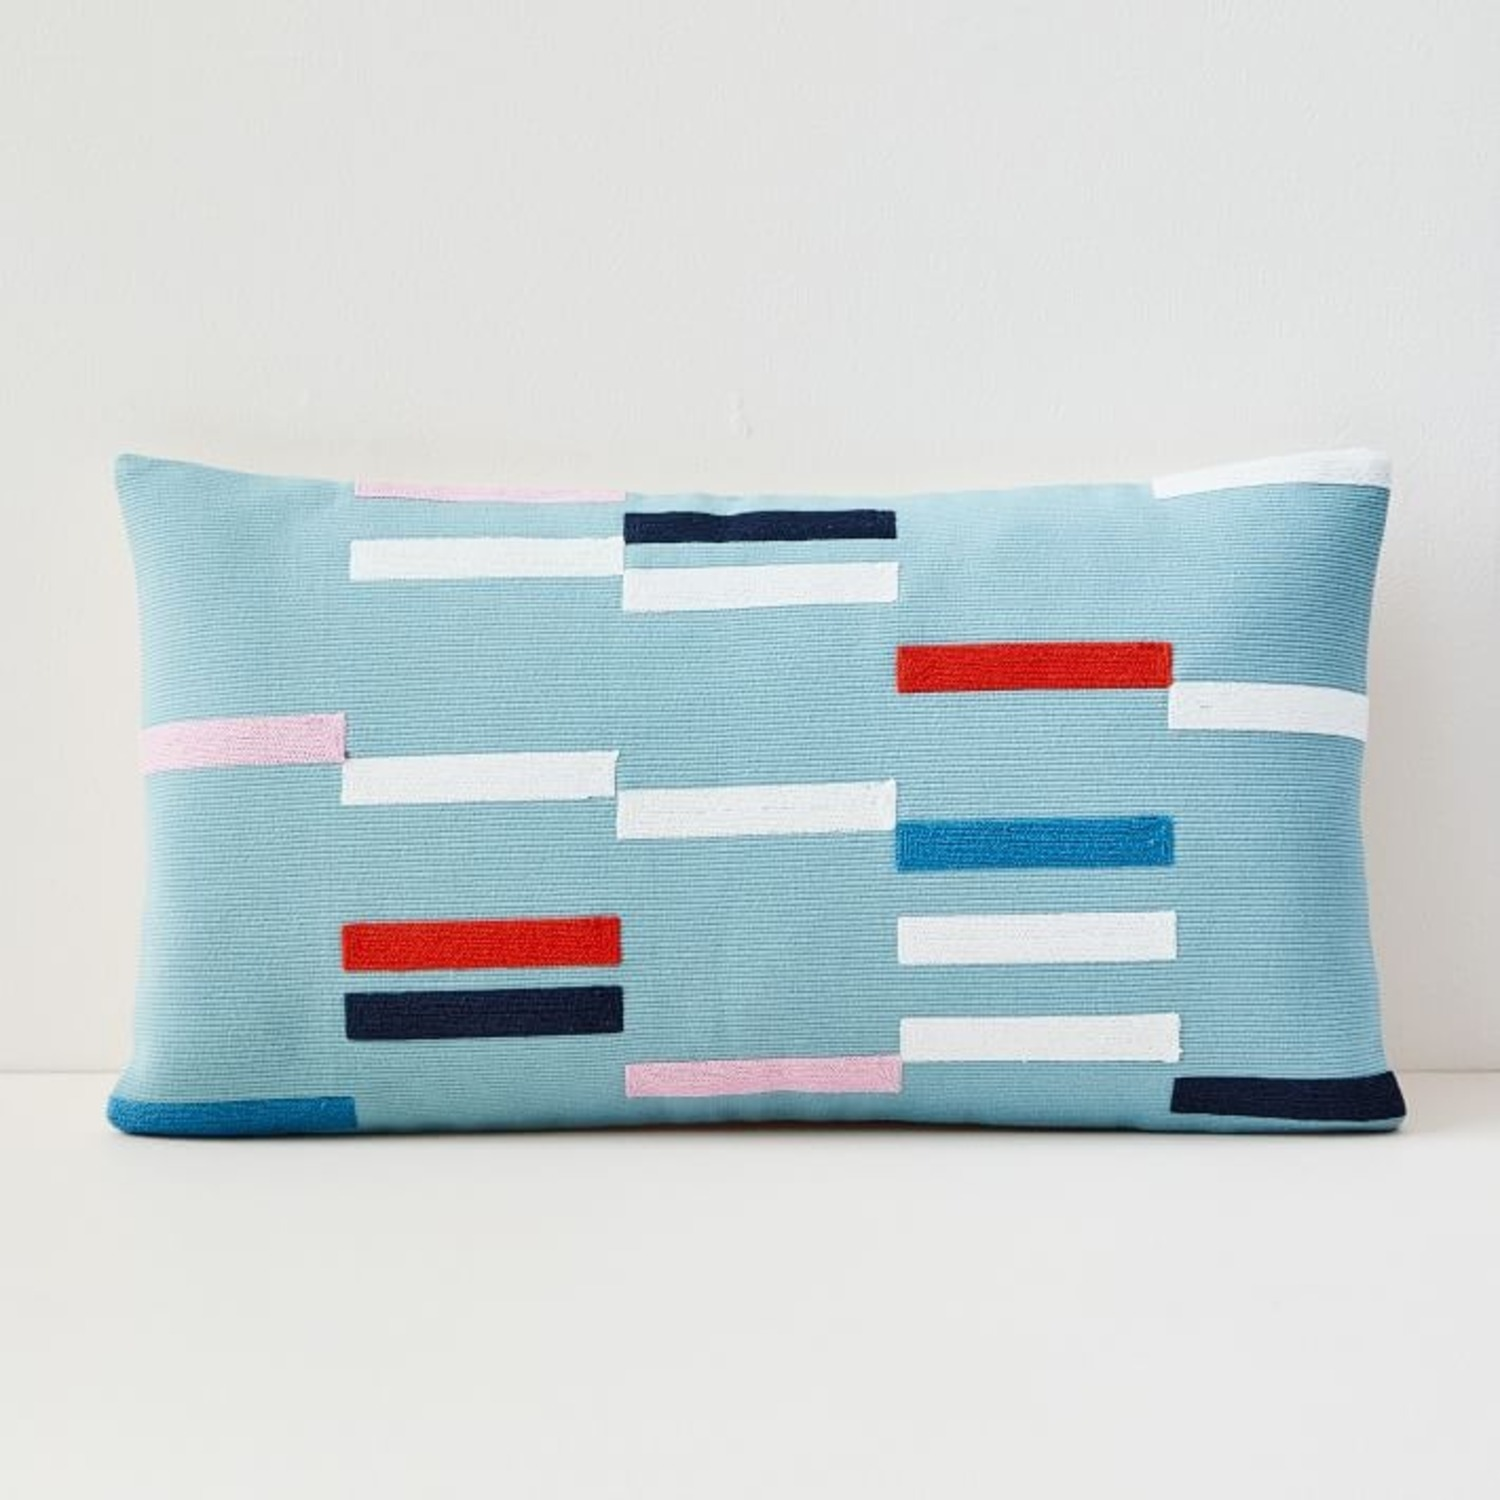 West Elm Margo Selby Staggered Stripe Pillow - image-1